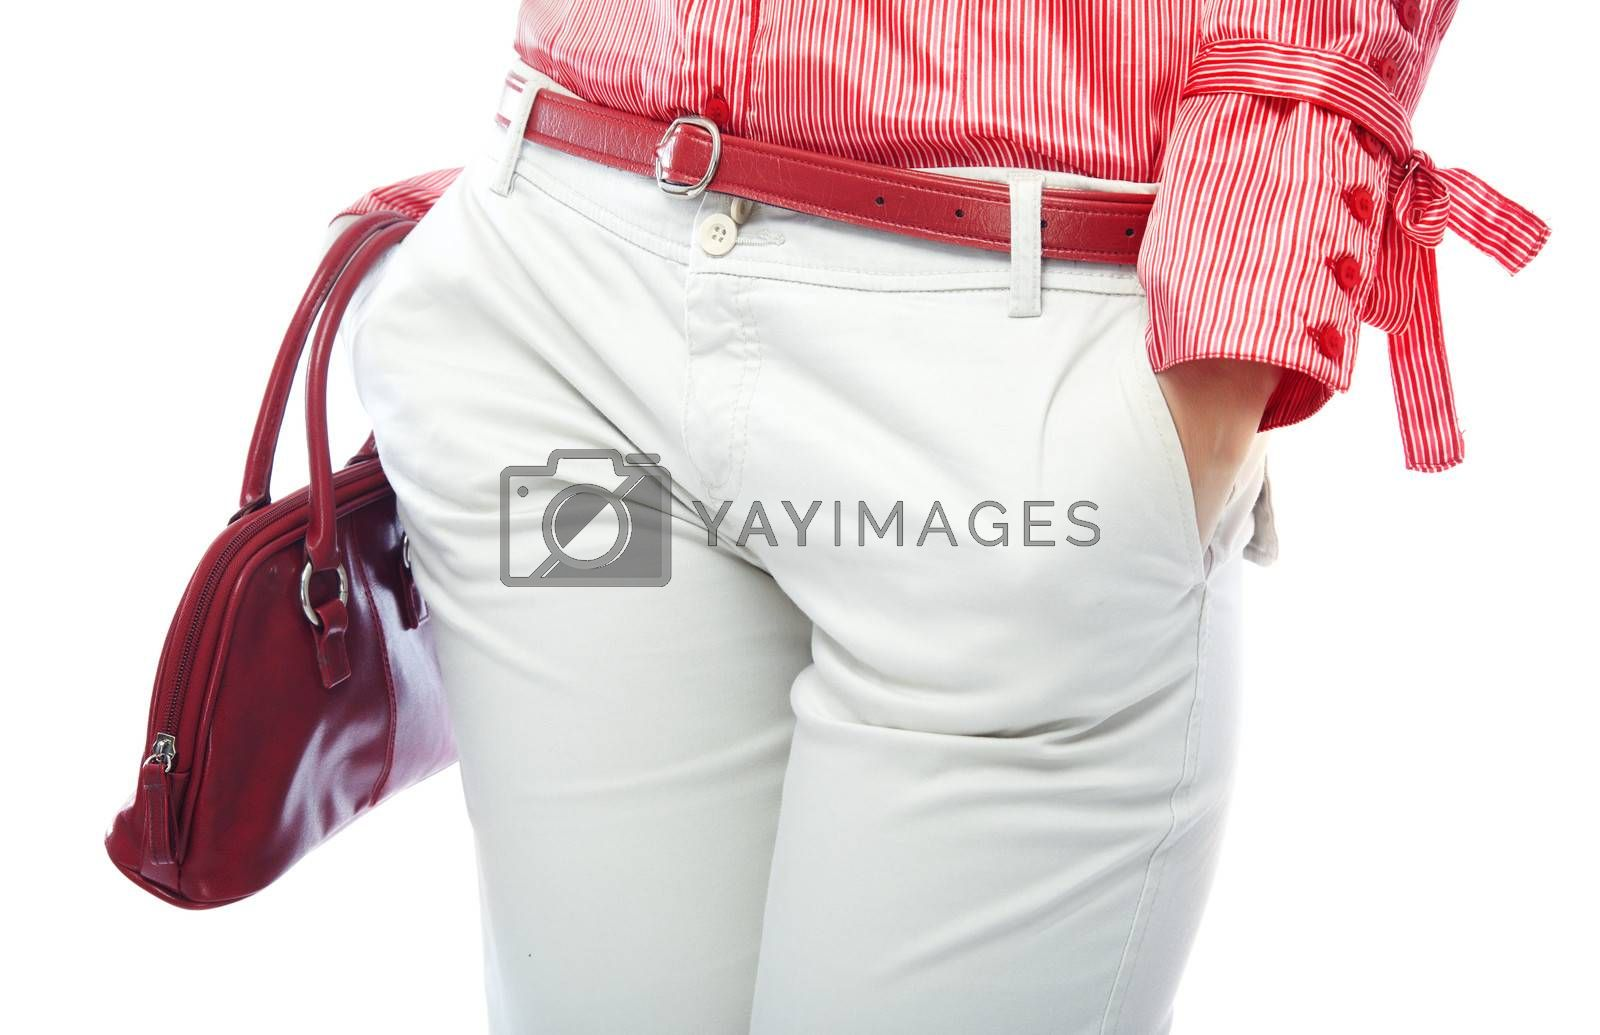 Body part of stylish lady in modern clothes with fashionable bag